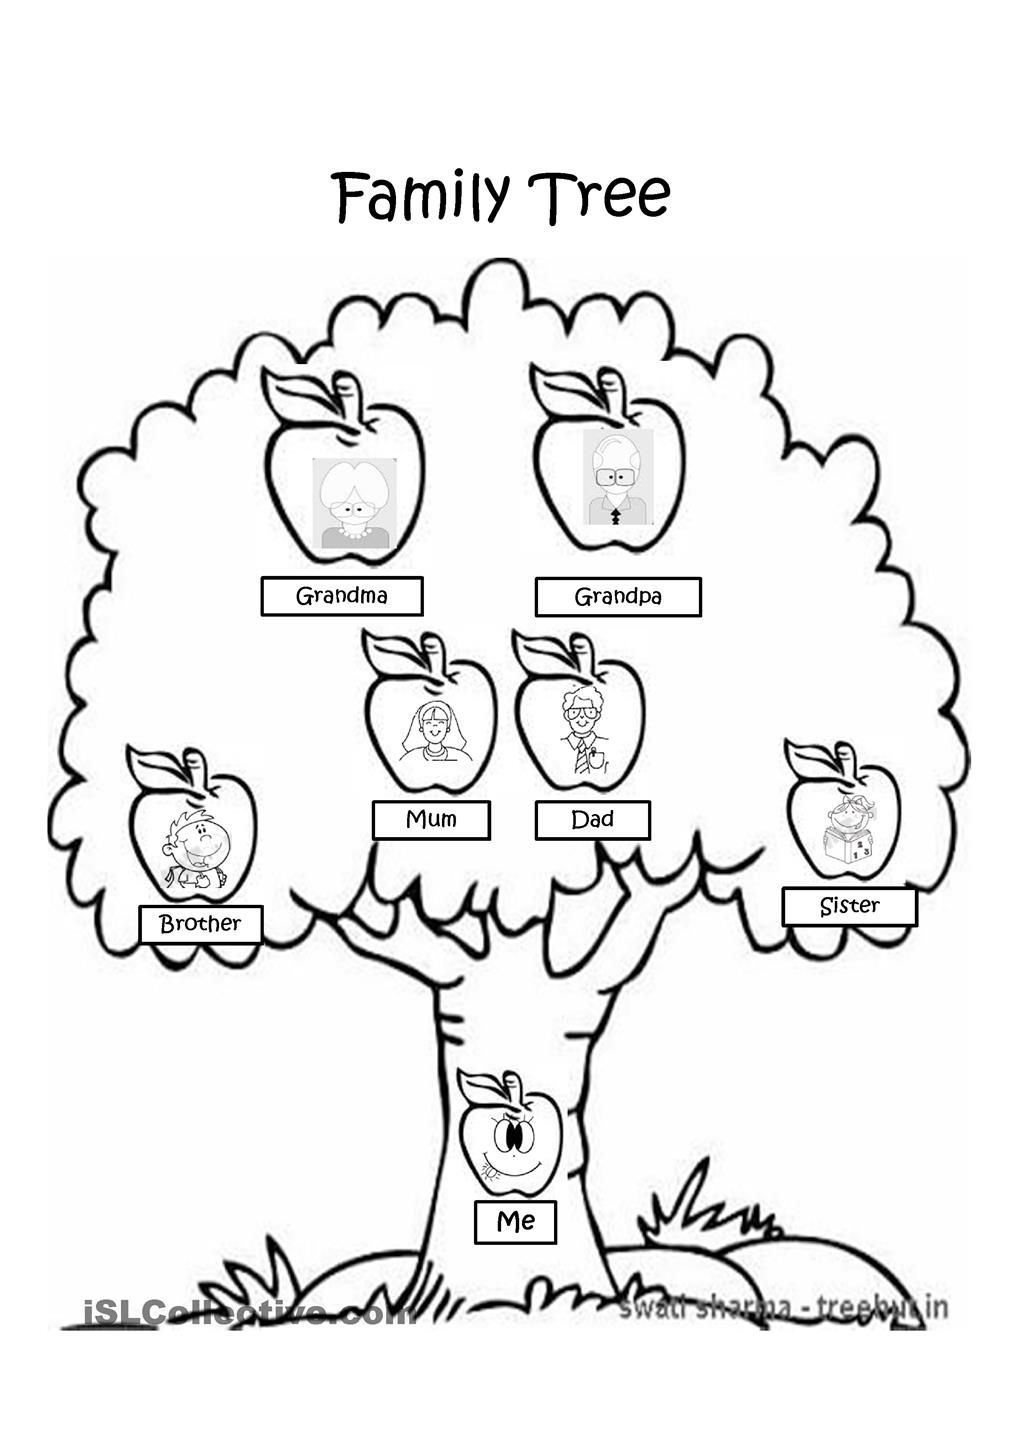 Worksheets Family Tree Worksheet For Kids family tree clipart black and white explore worksheet more